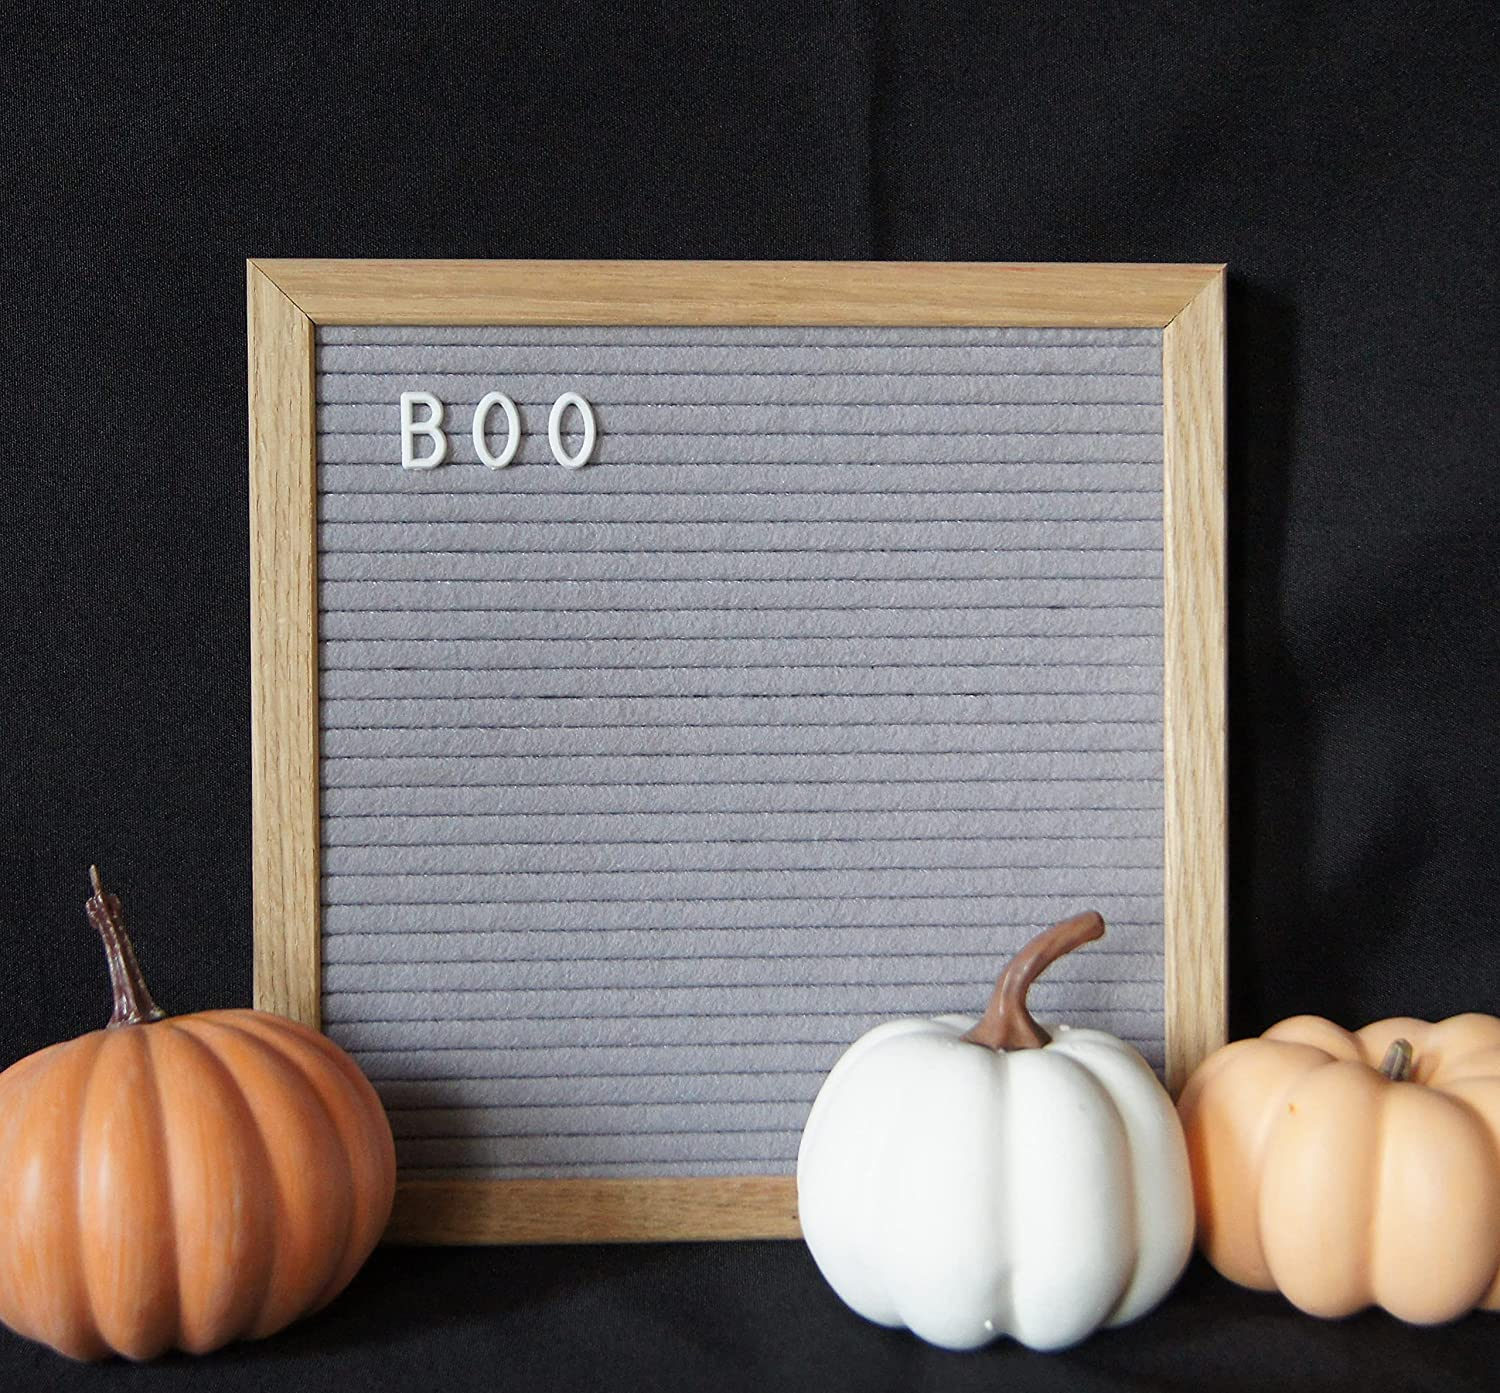 Luv Letters Letter Board 10x10 inch(Grey) Natural Oakwood Frame, Felt Letter Board, Wall Mount, Table Top Display. Home Decor, Office